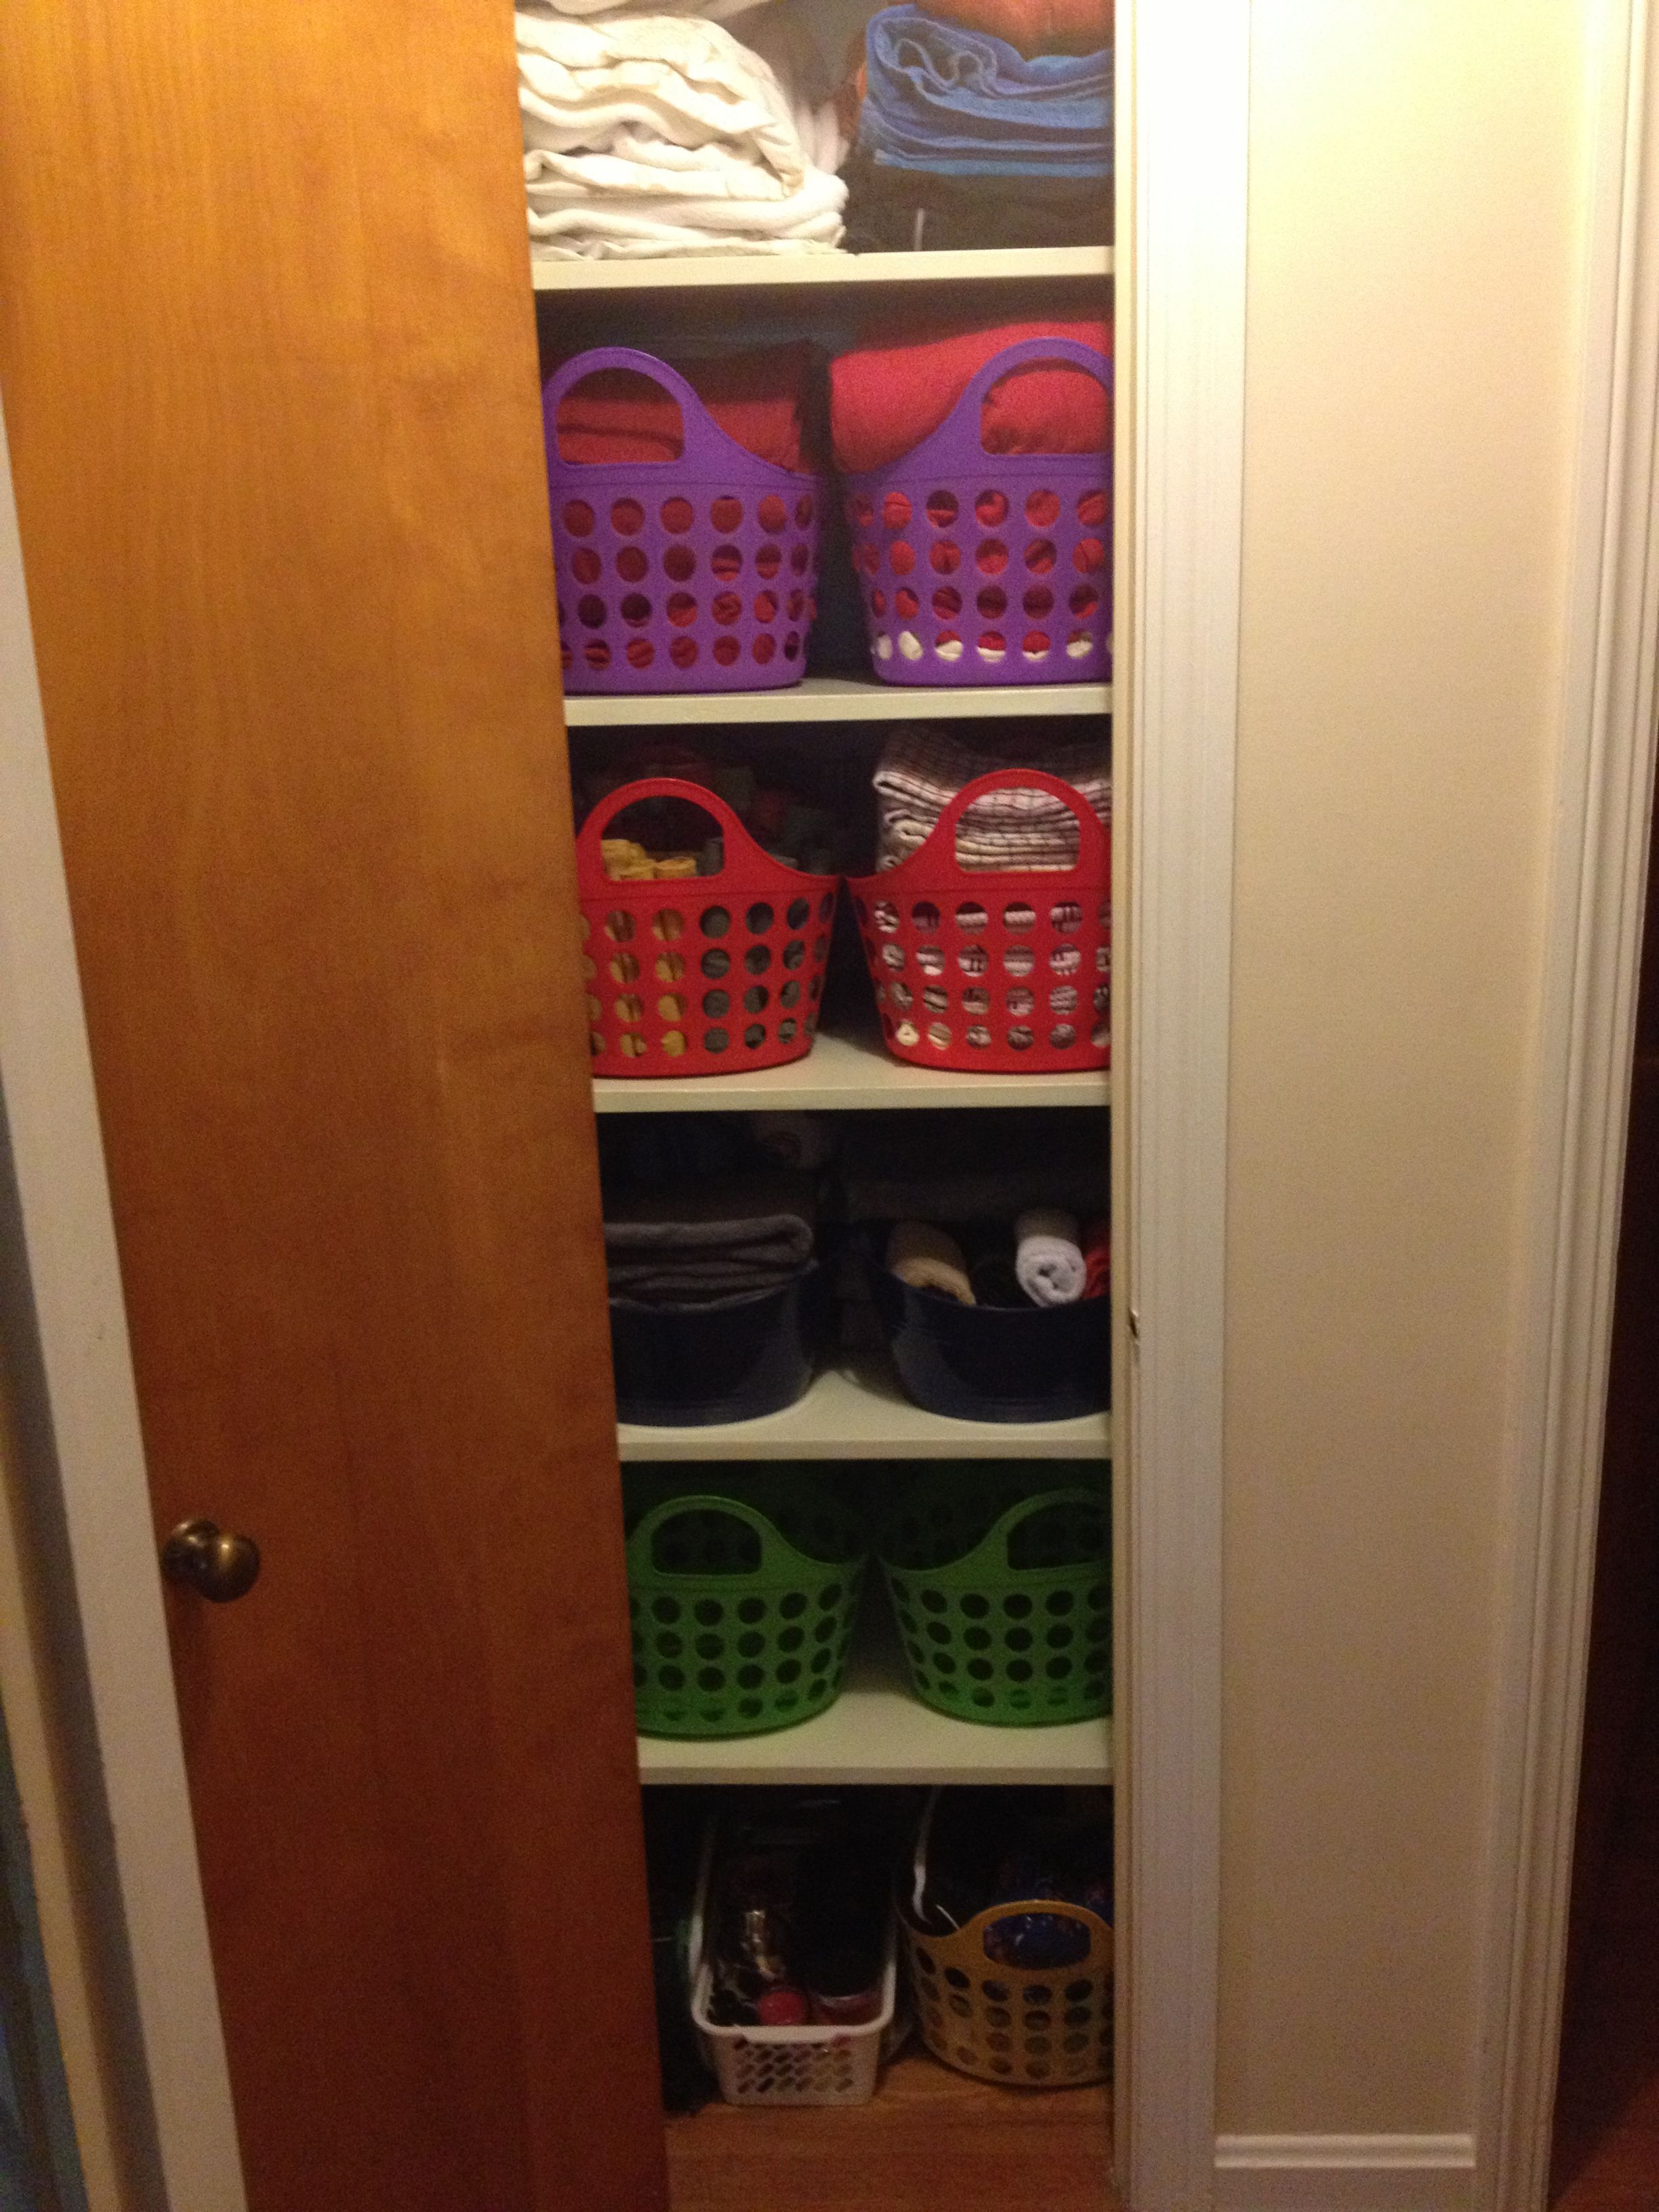 Dollar Tree Baskets Used For Linen Closet Organization Linen Closet Home Organization Closet Organization